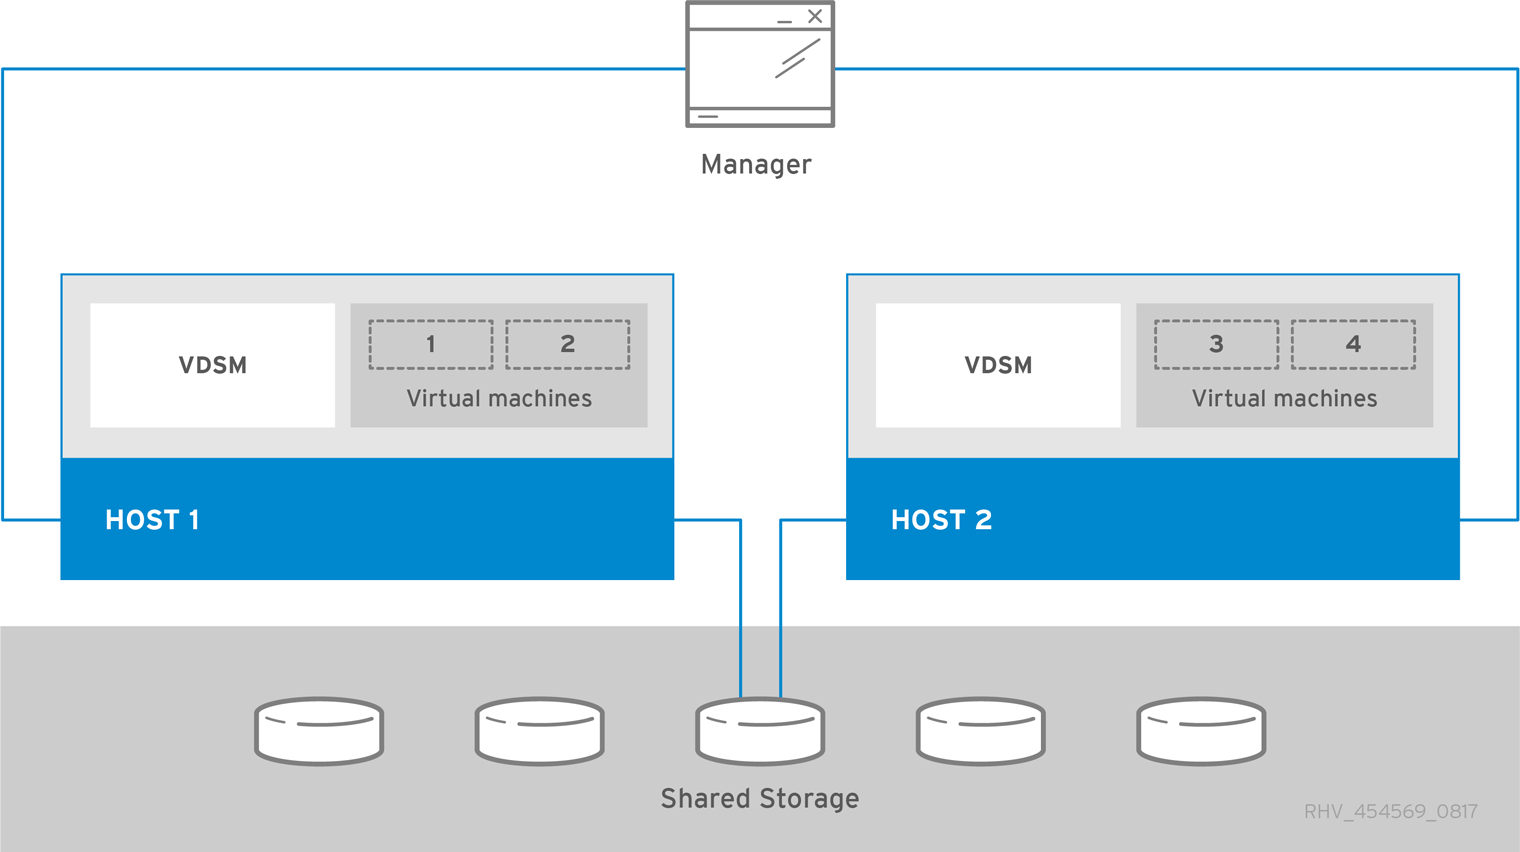 Standalone Manager Red Hat Virtualization Architecture